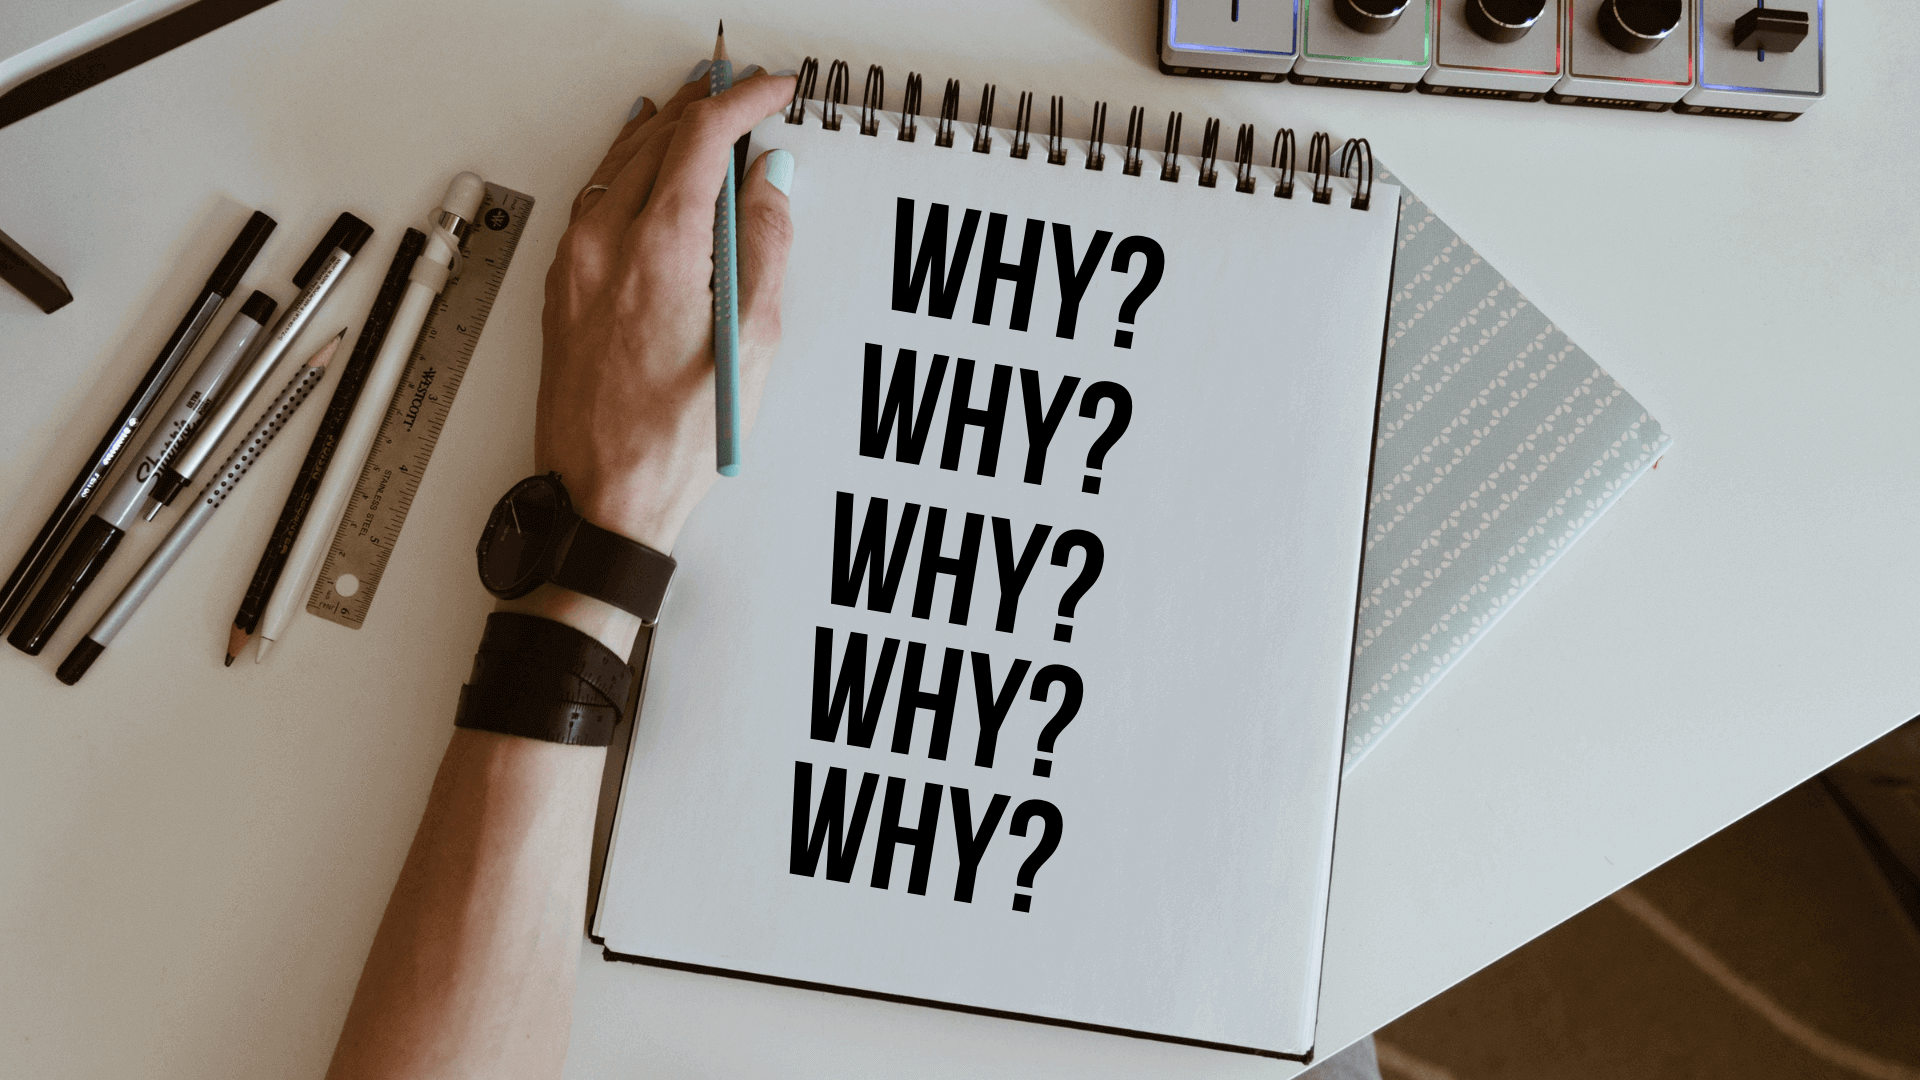 Using the 5 Whys method for process improvement